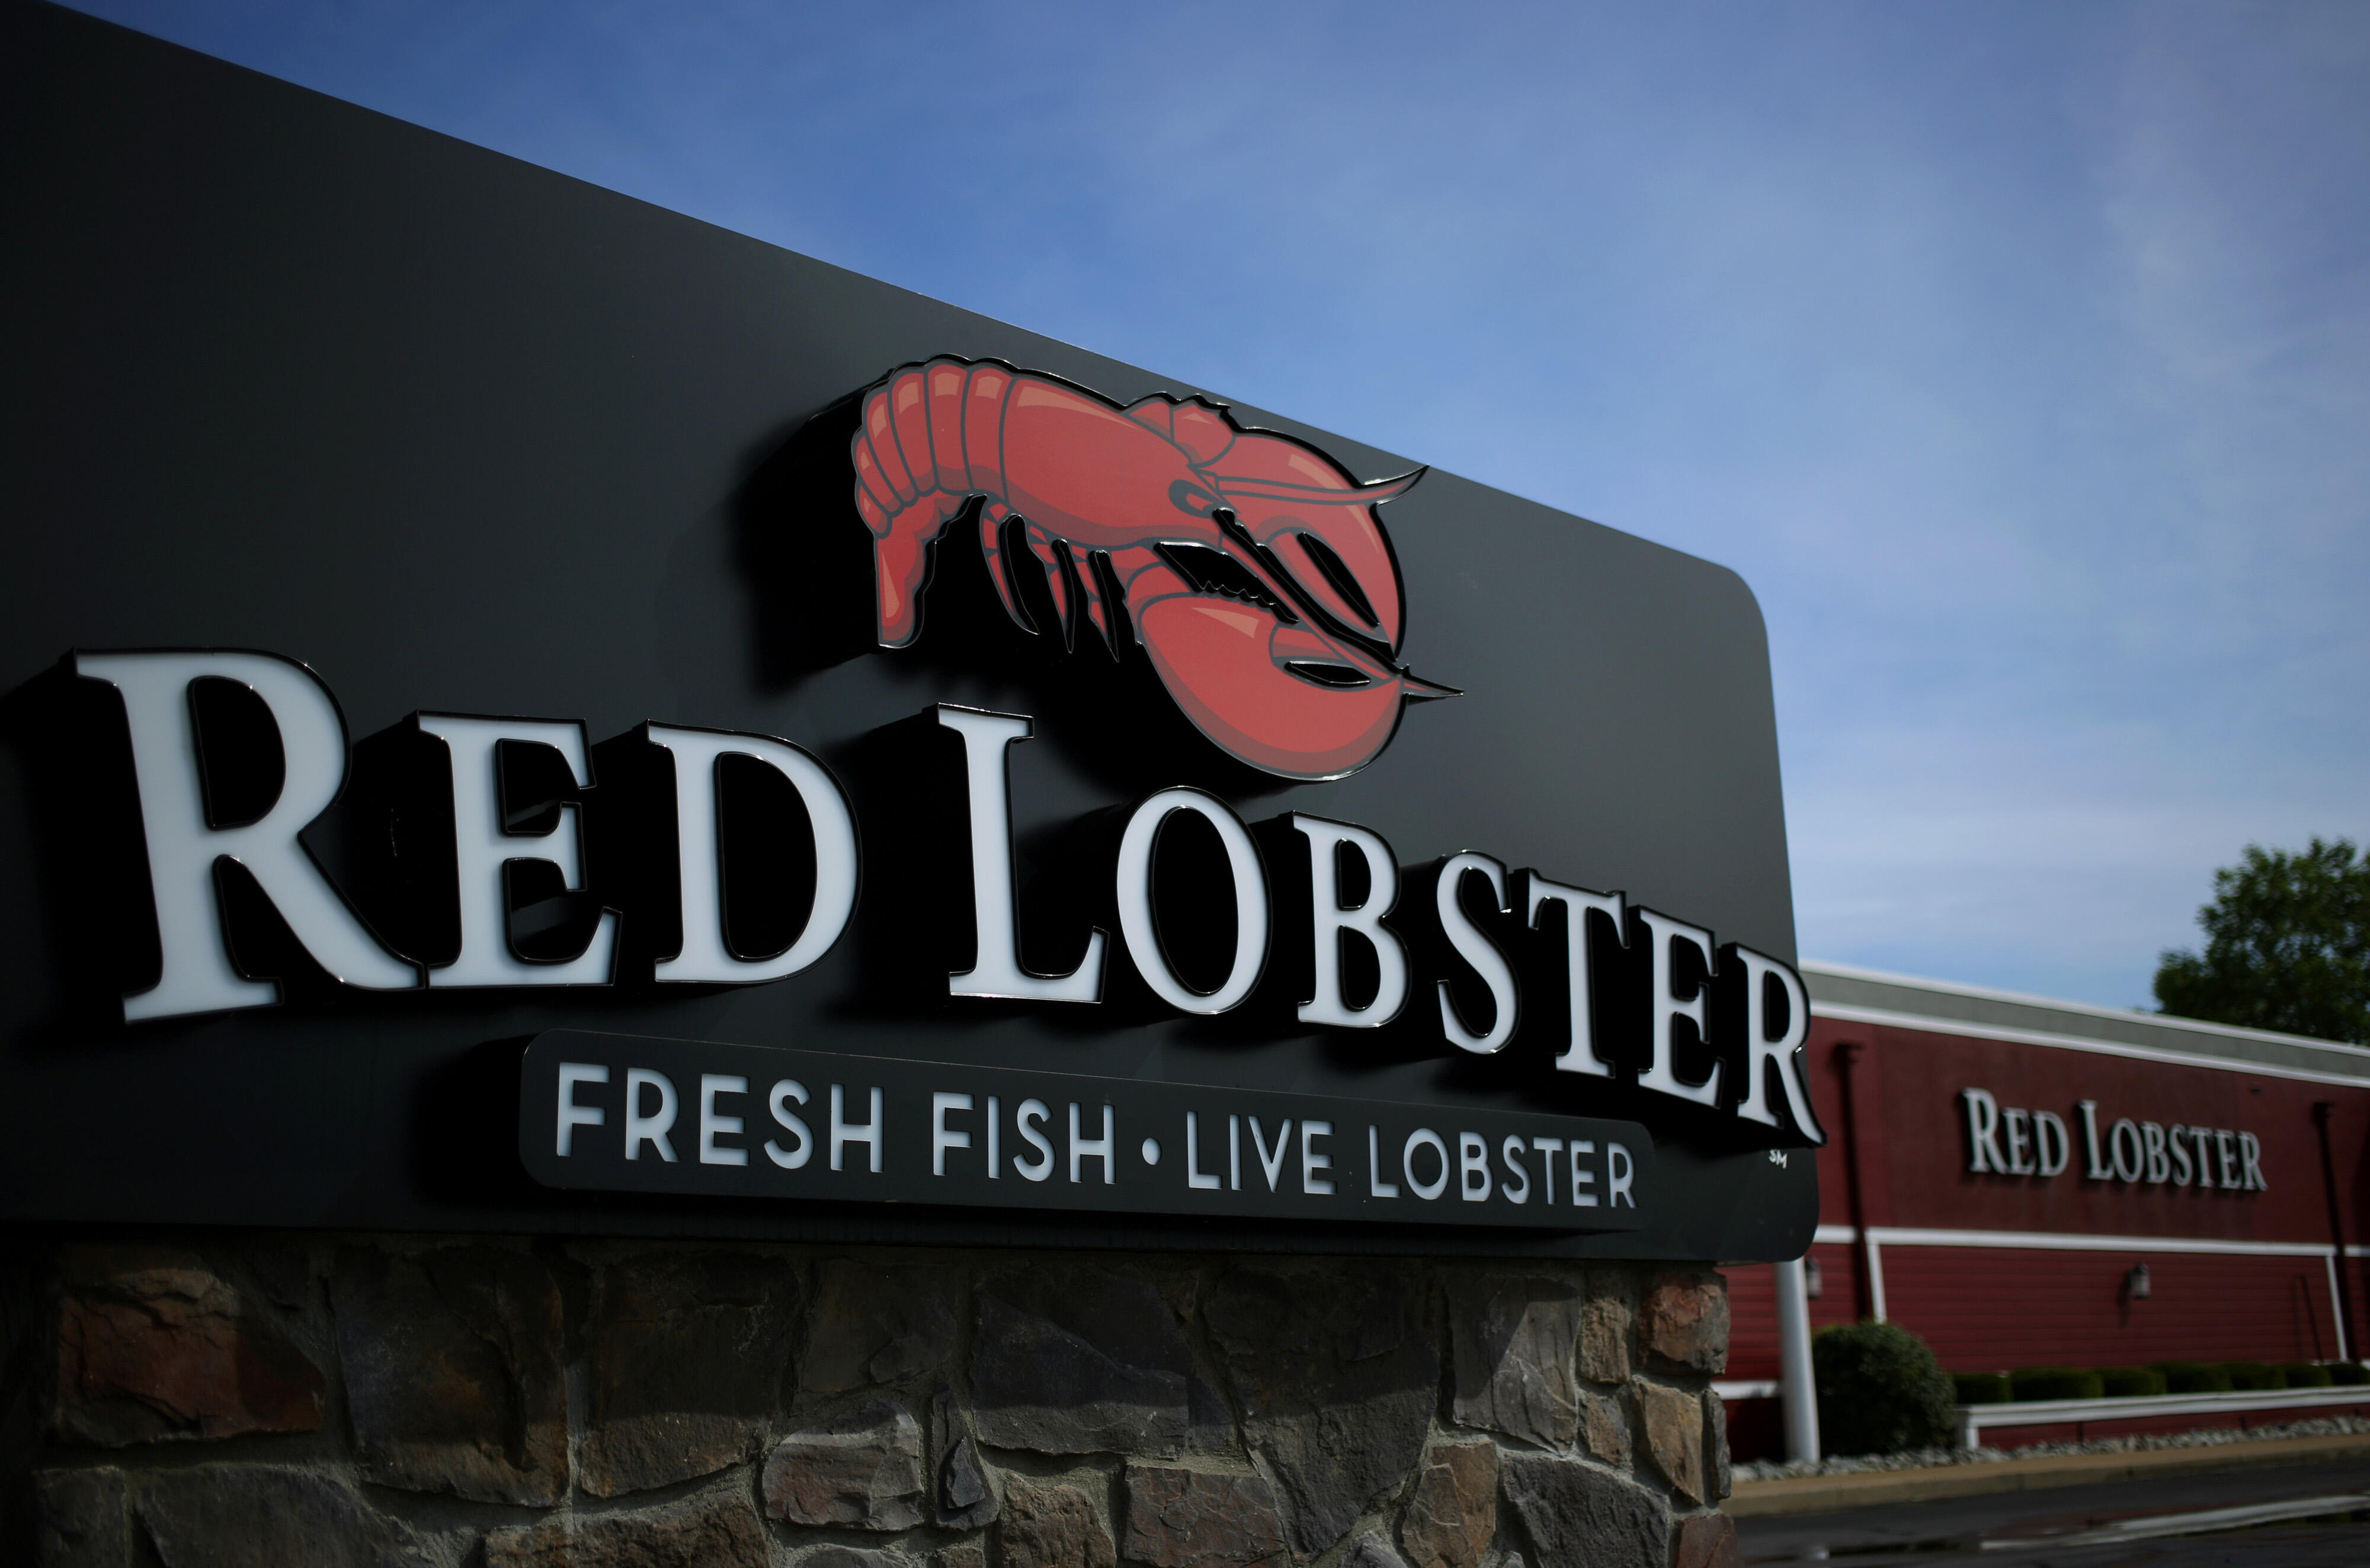 Red Lobster Will Tell You What Type Of Shark You Are Based On Your Order